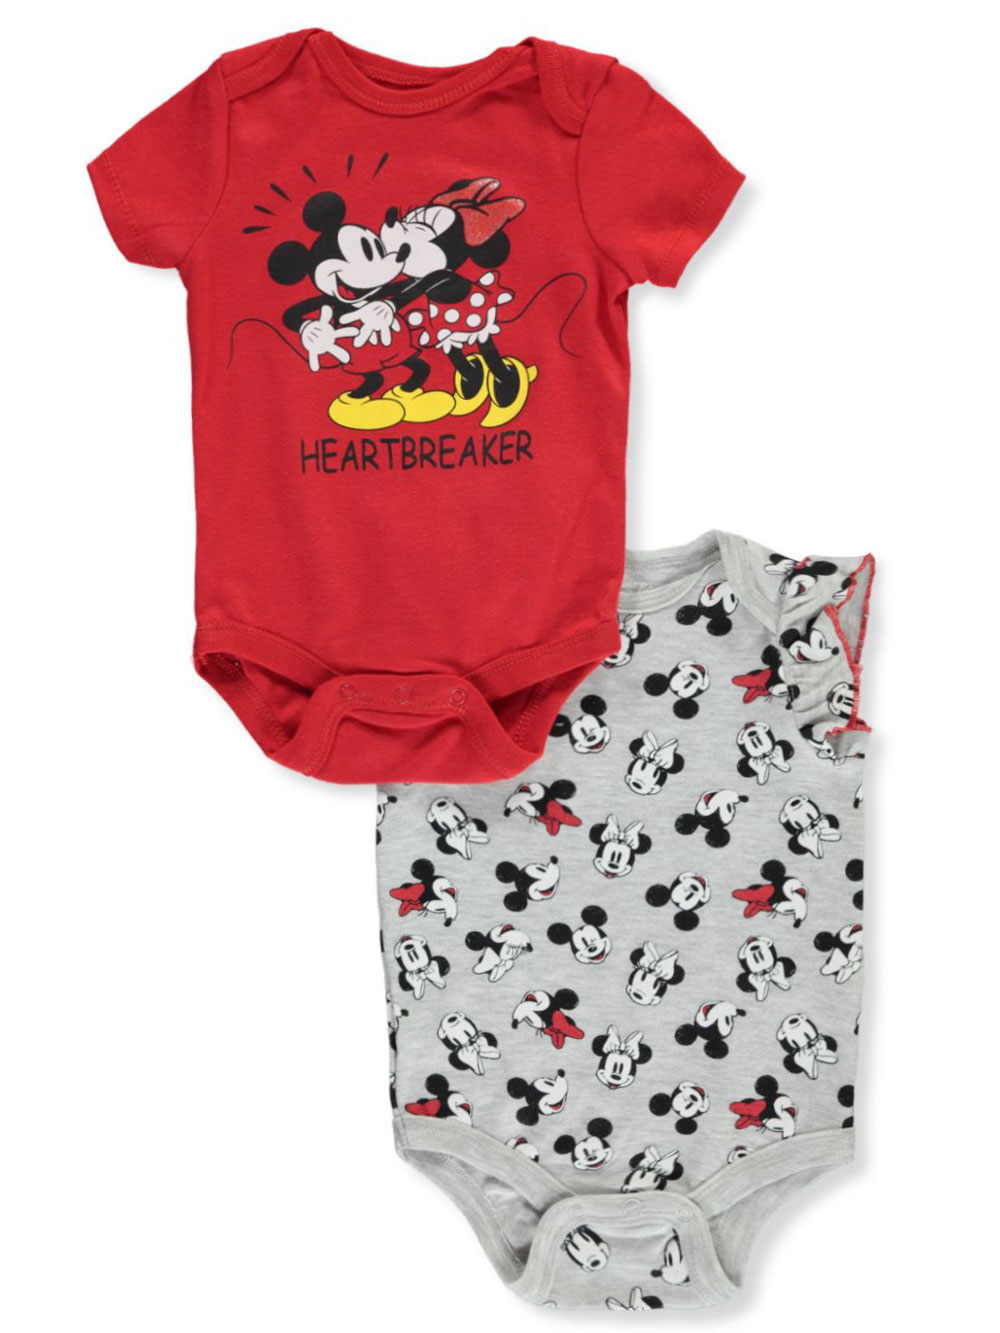 3 X 3Pack 9 White Disney Unisex Bodysuit//Onsies With Snap Buttons